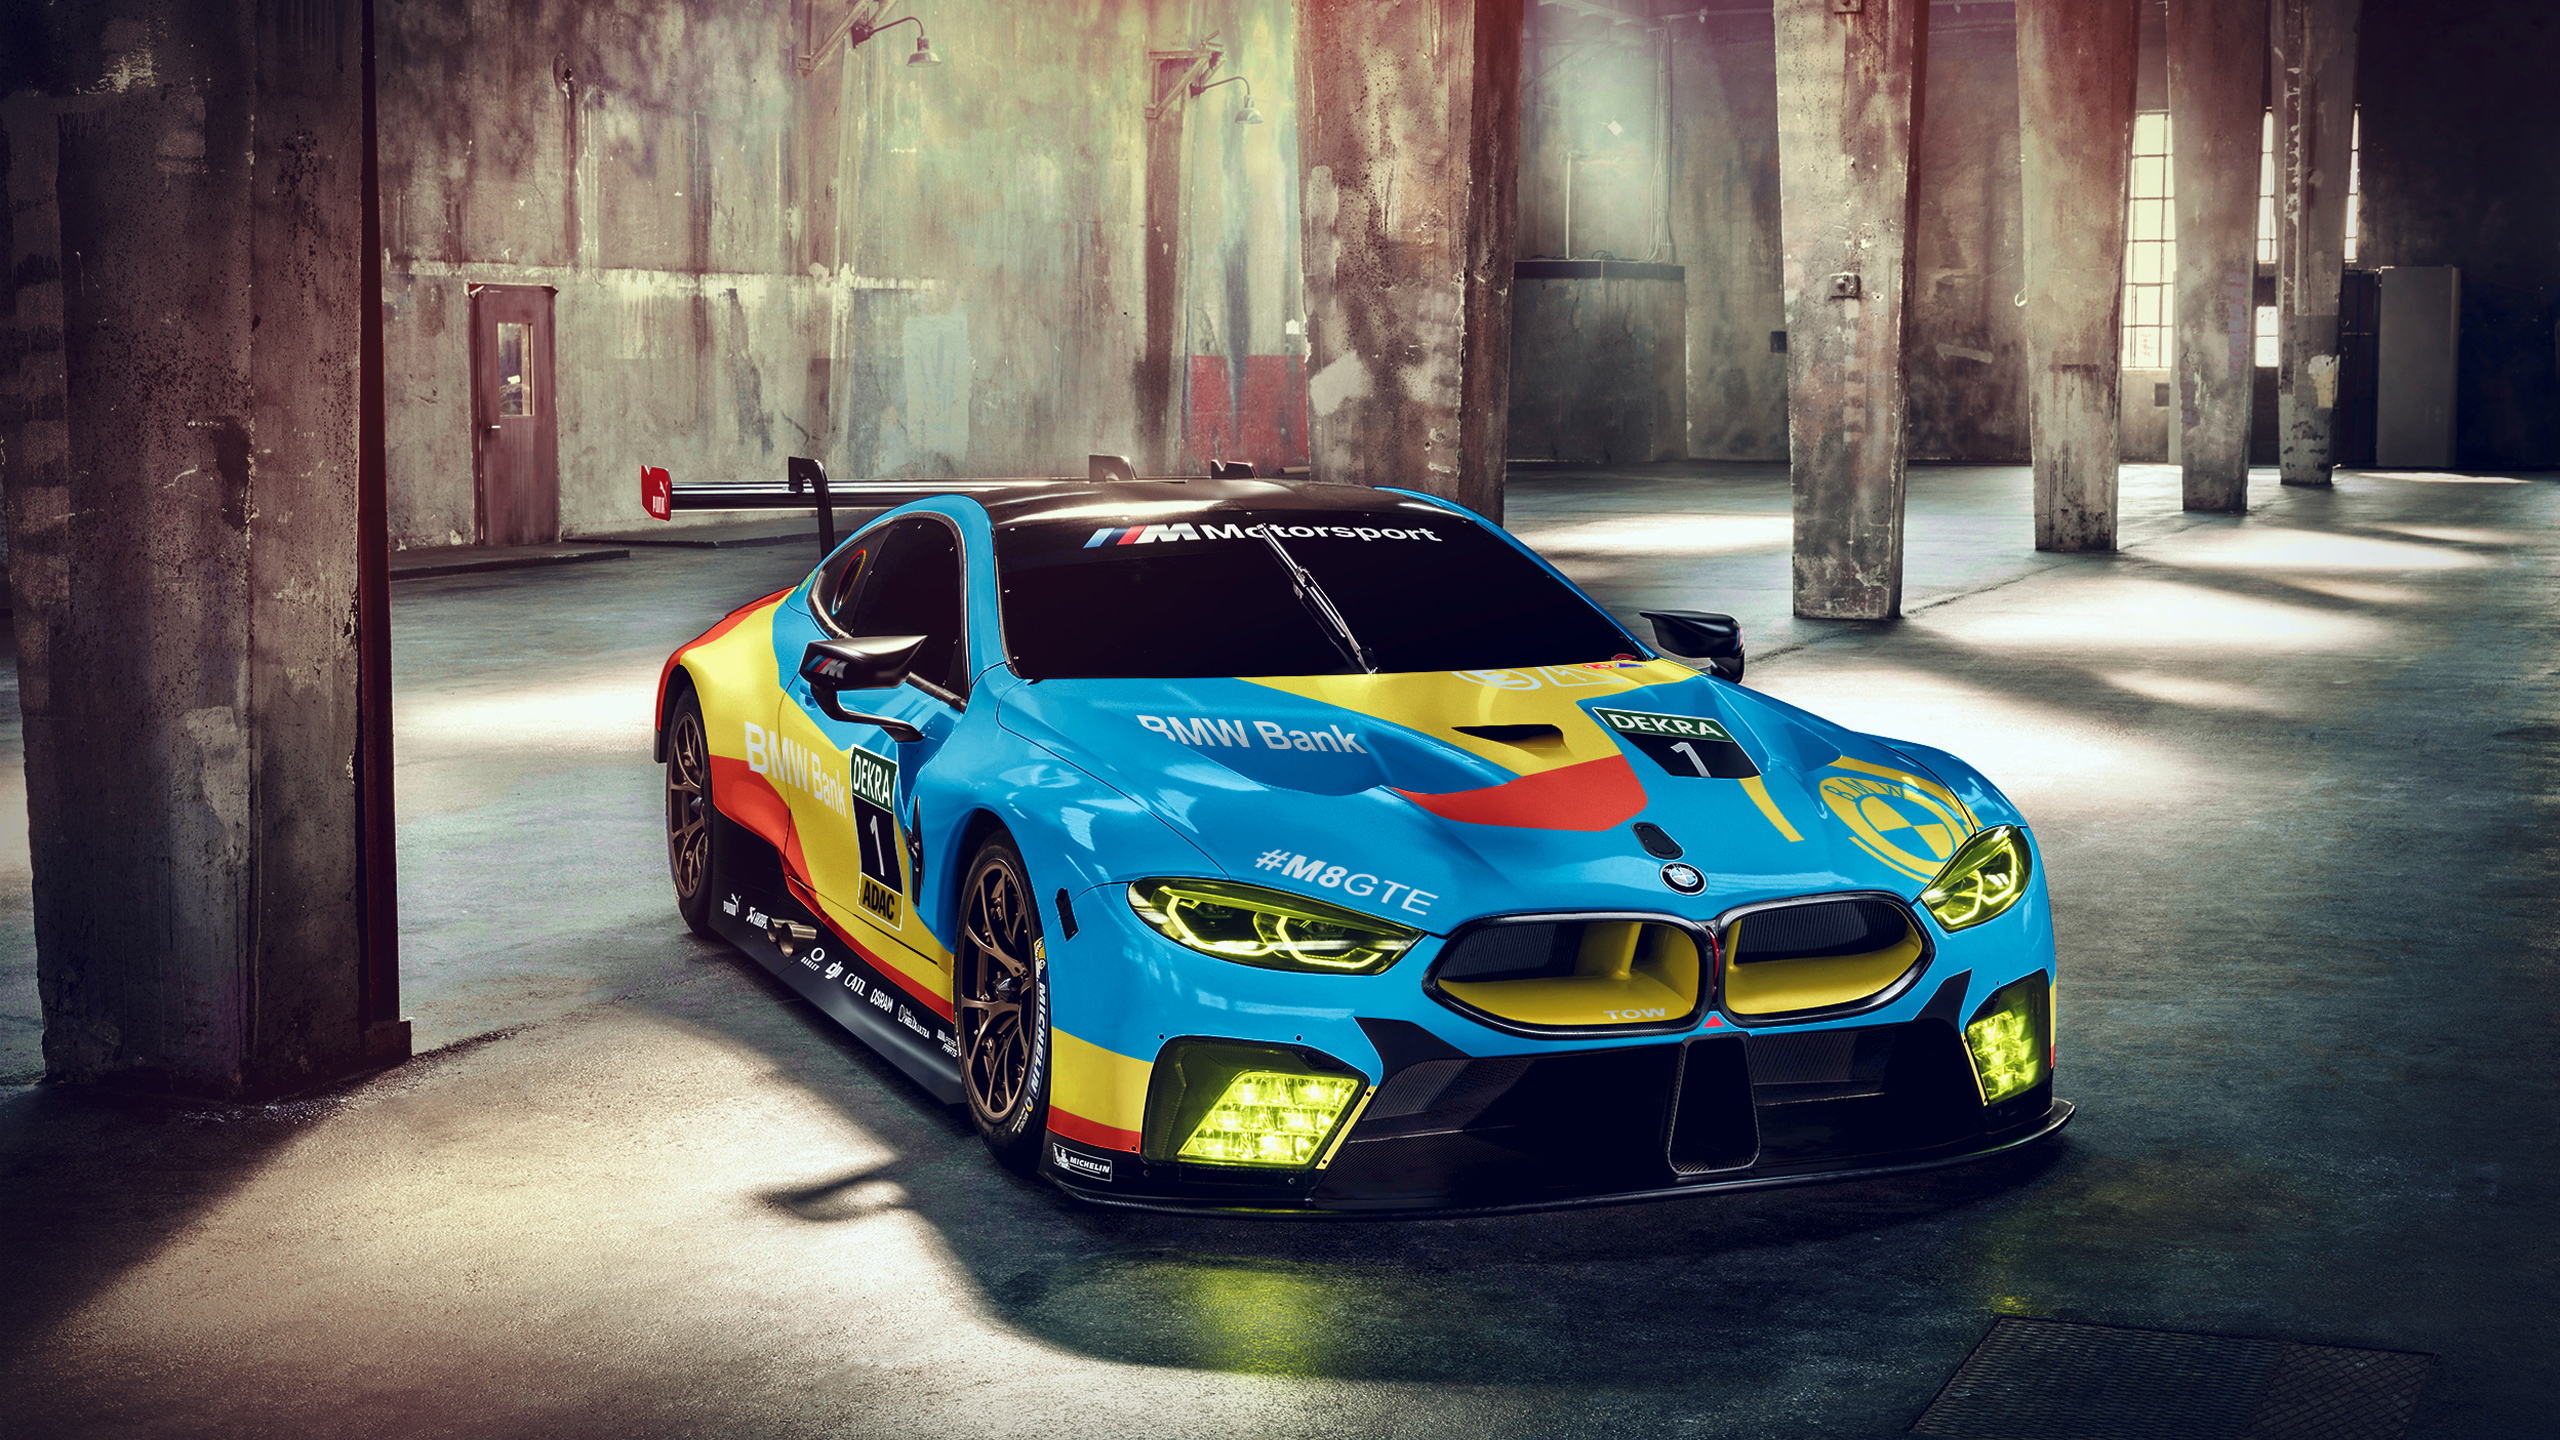 bmw m8 gte 2018 wallpaper hd car wallpapers id 9270. Black Bedroom Furniture Sets. Home Design Ideas